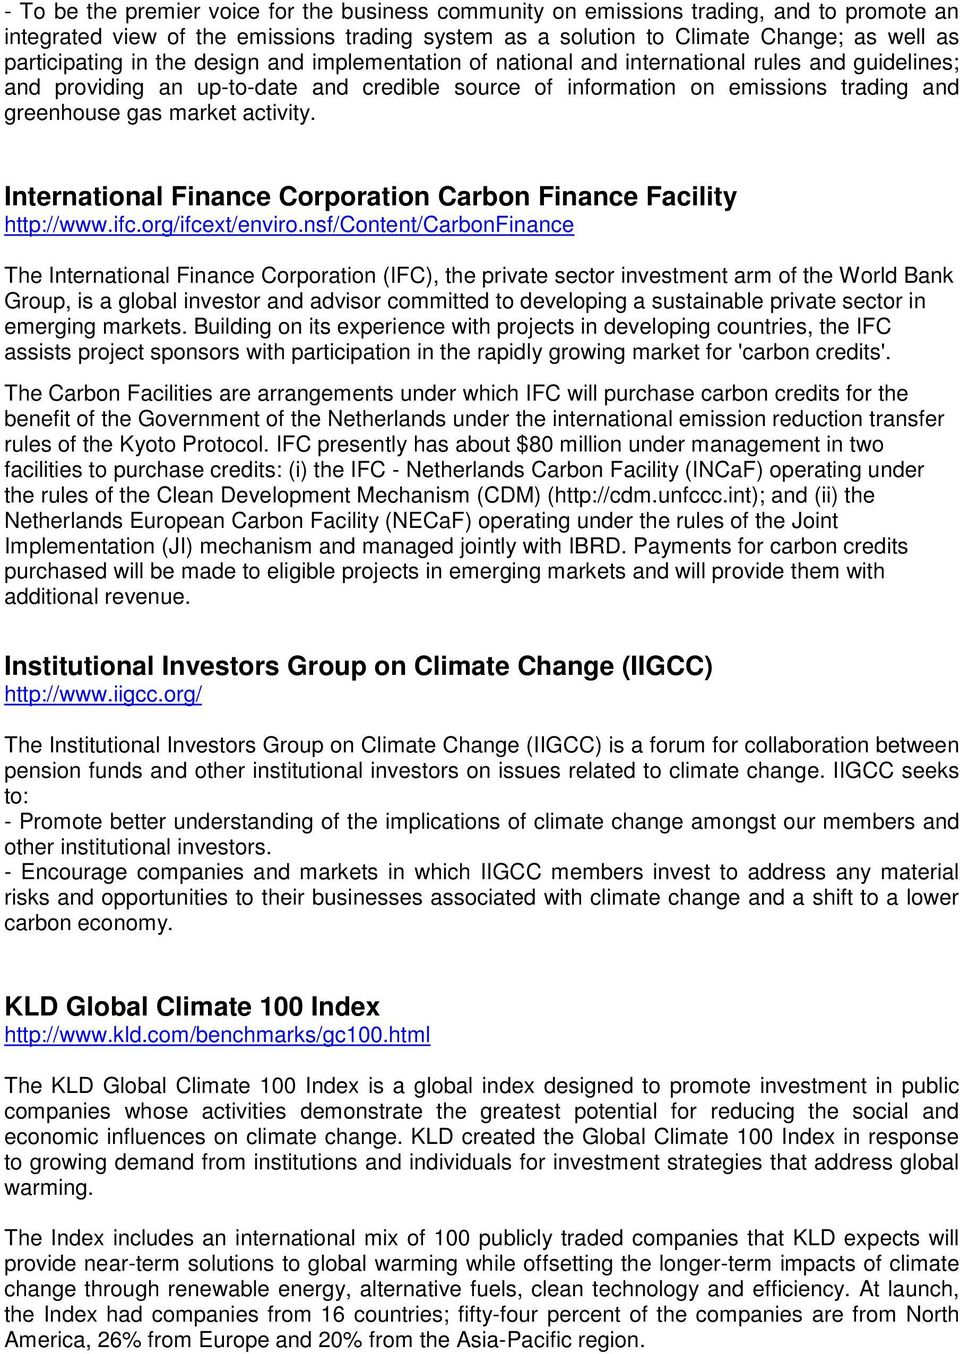 activity. International Finance Corporation Carbon Finance Facility http://www.ifc.org/ifcext/enviro.